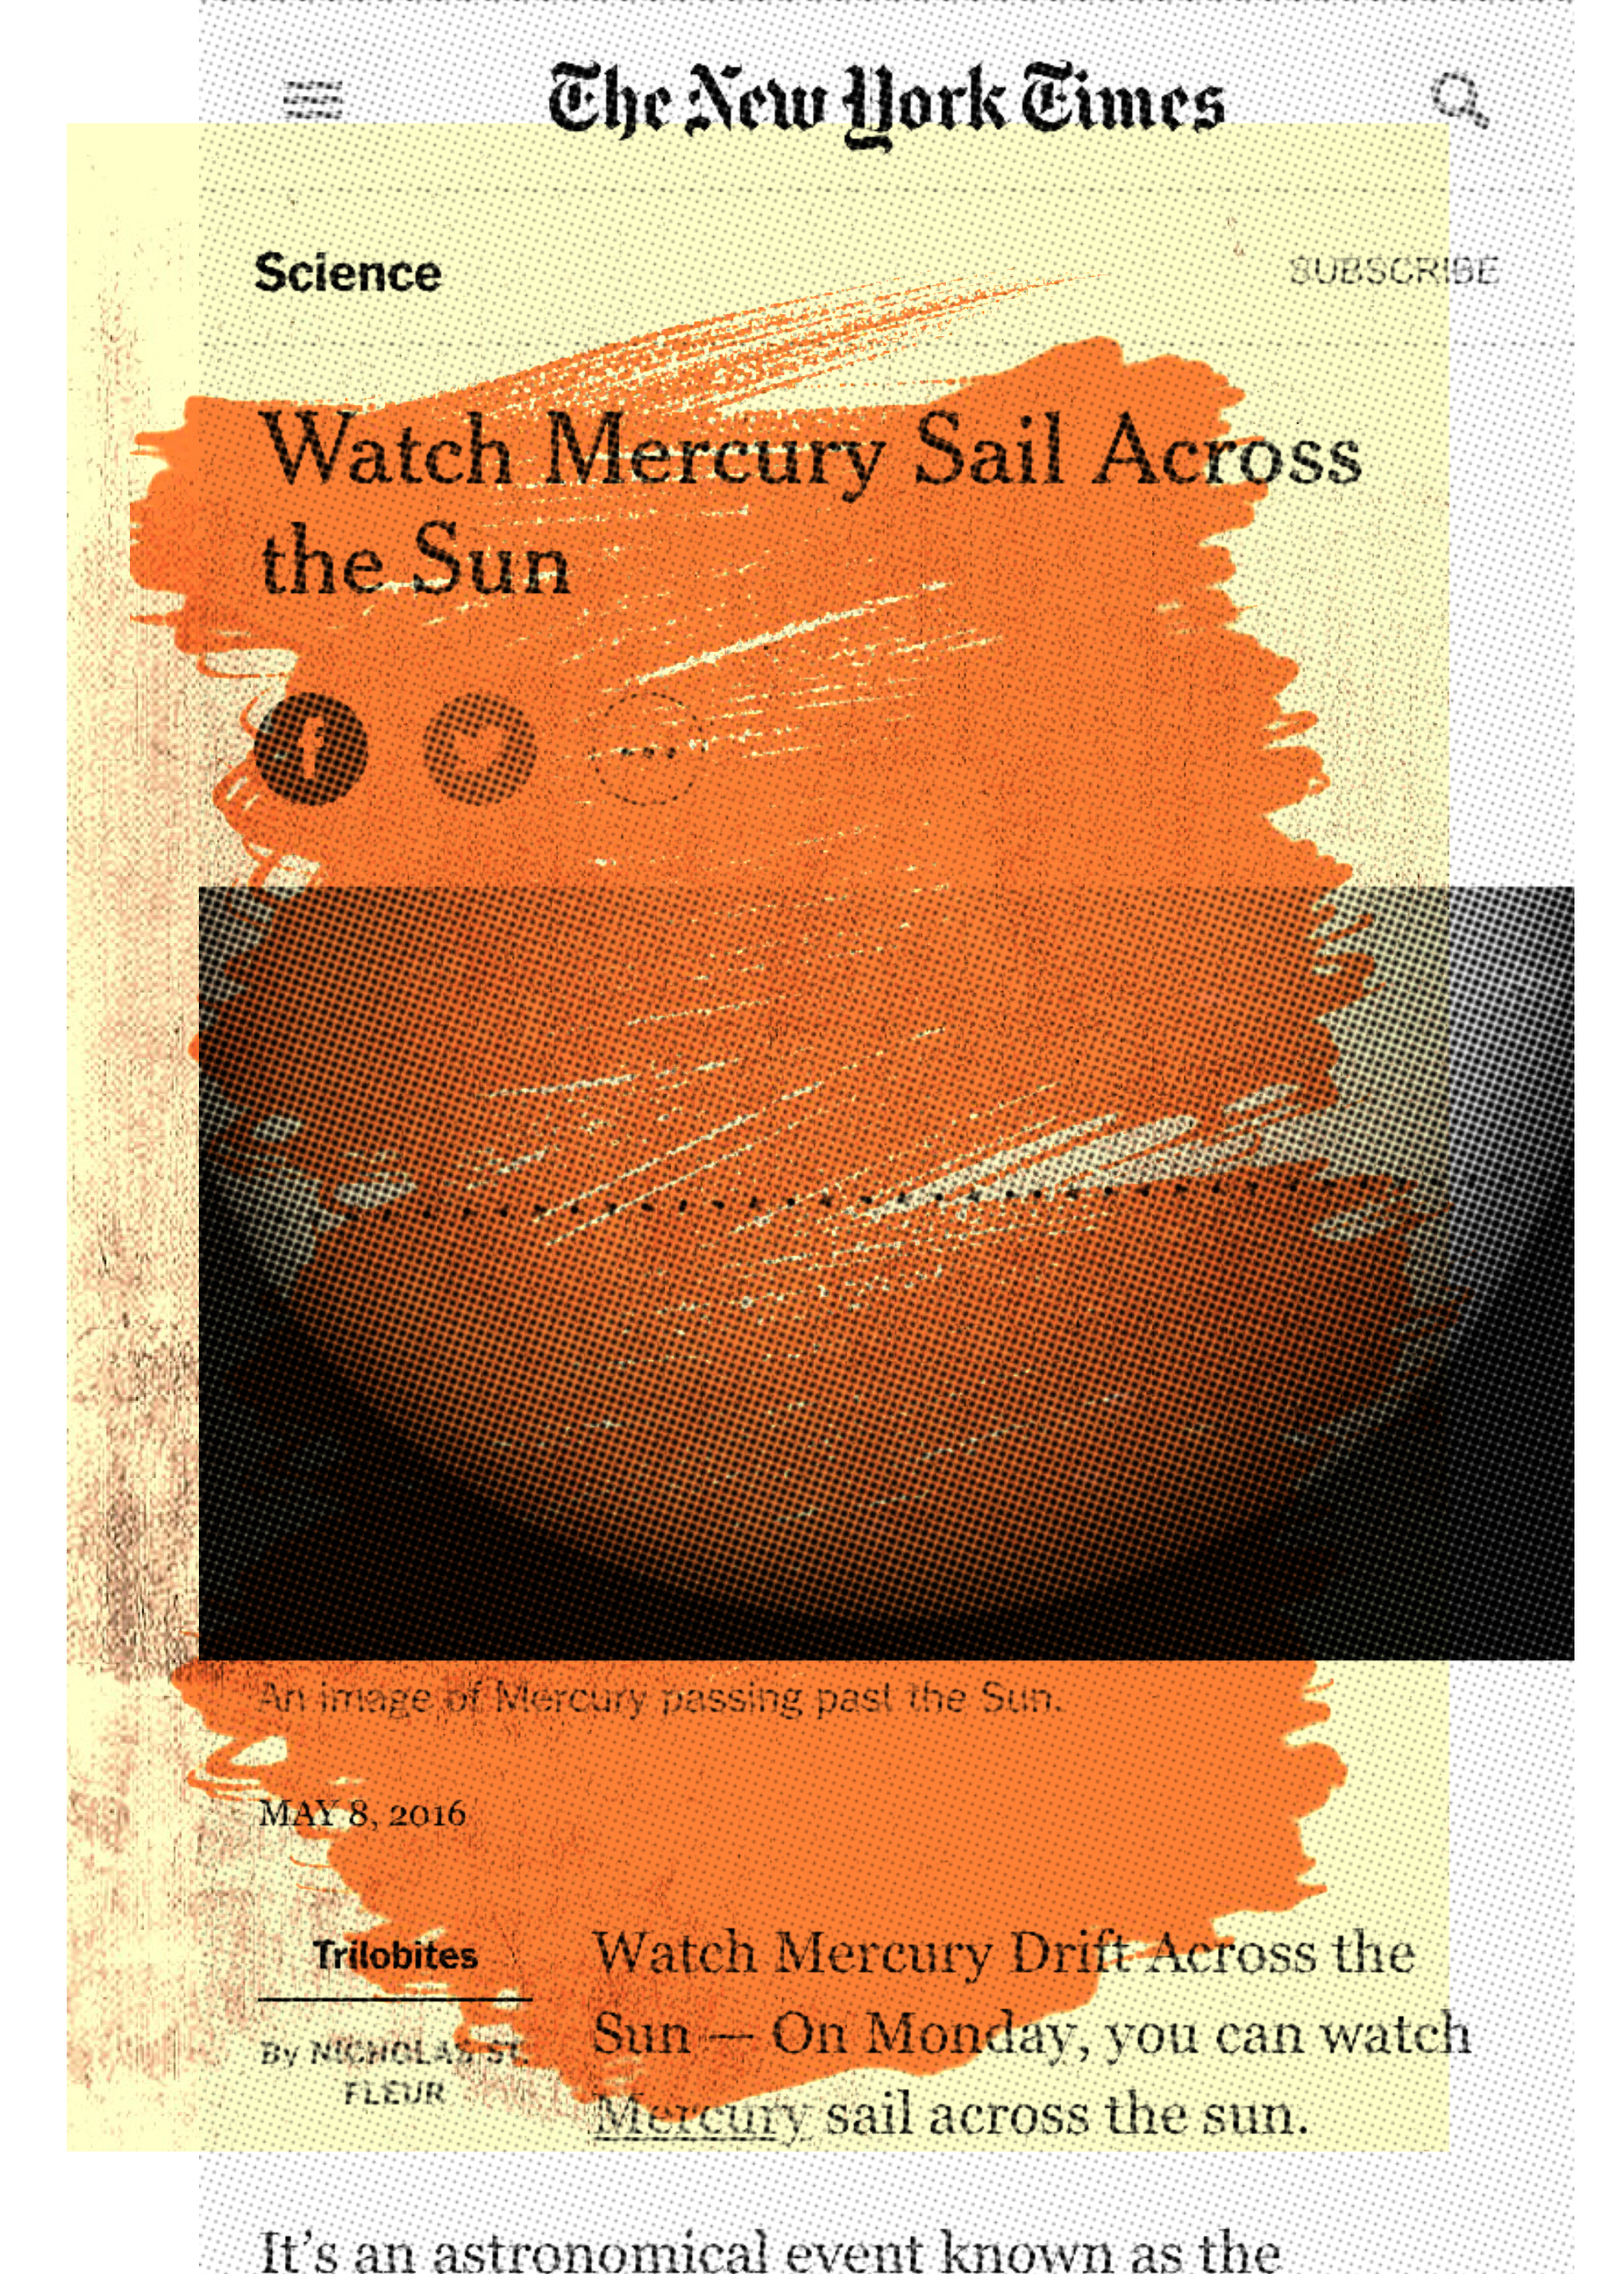 """Watch Mercury Sail Across the Sun"", iPhone 6S, digital image, 2016."